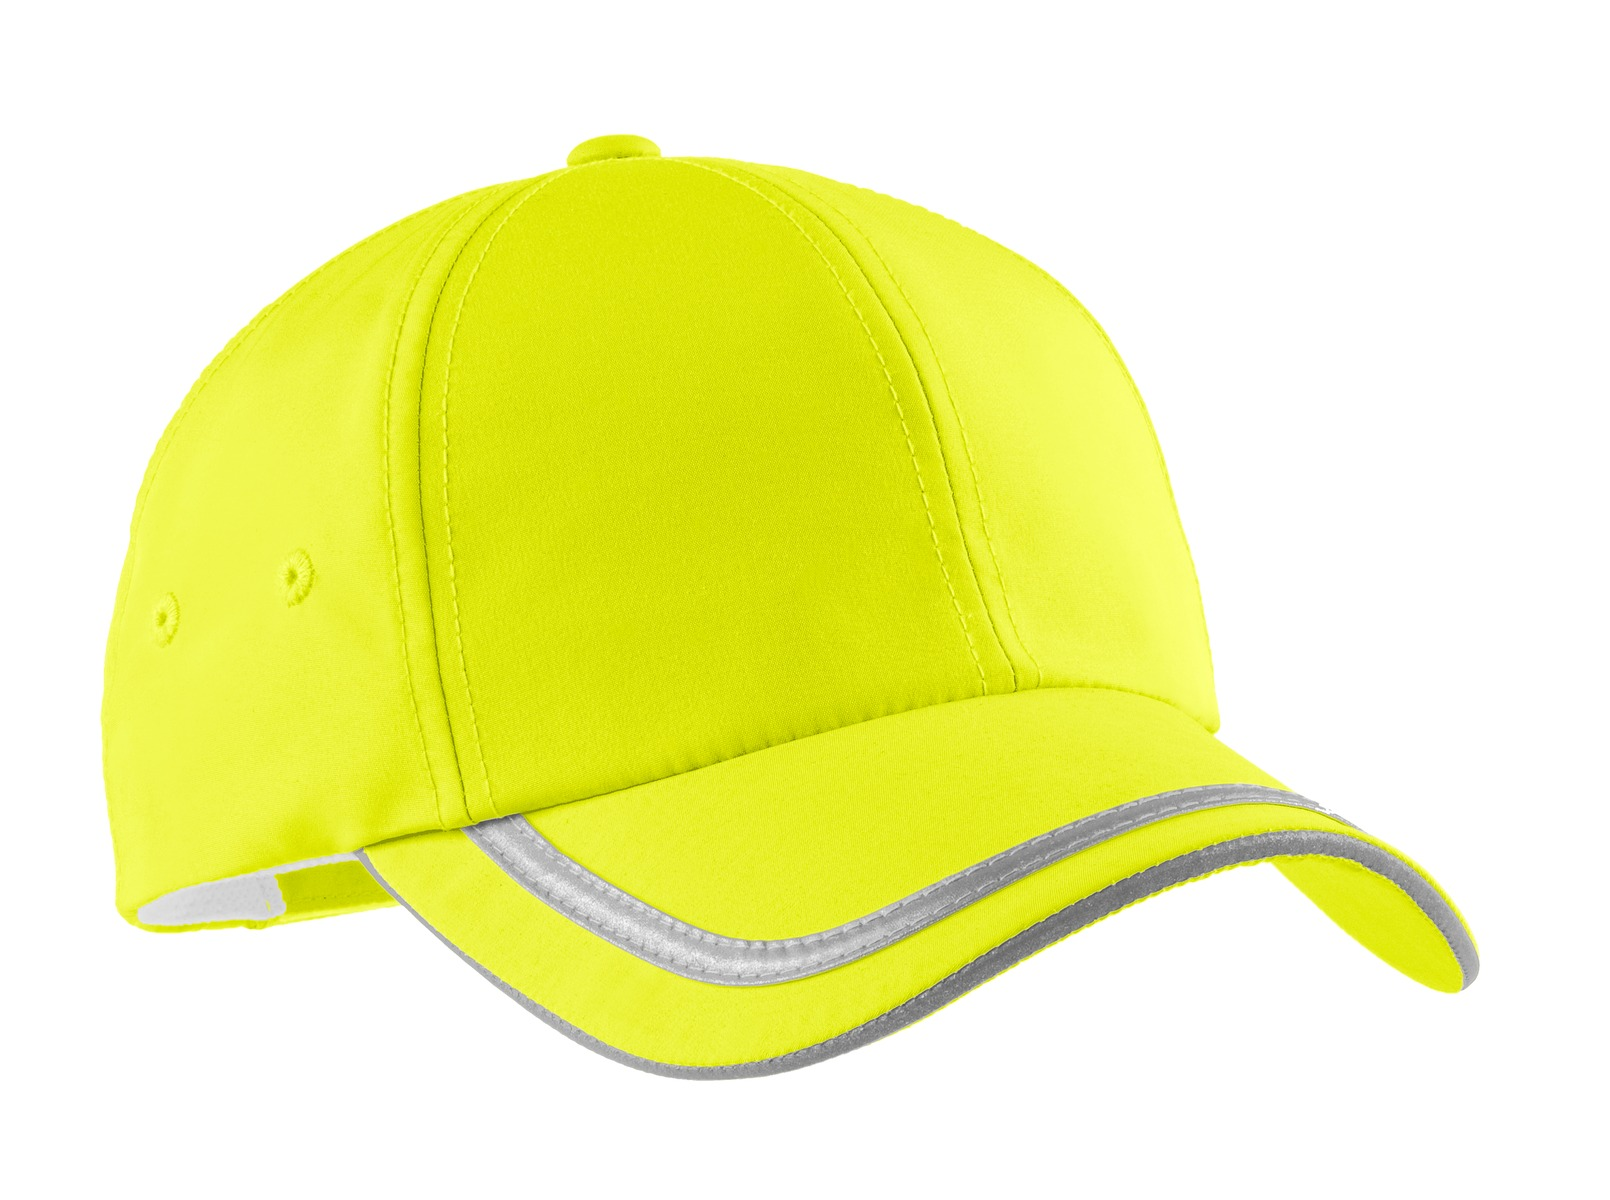 Port Authority ®  Enhanced Visibility Cap.  C836 - Safety  Yellow